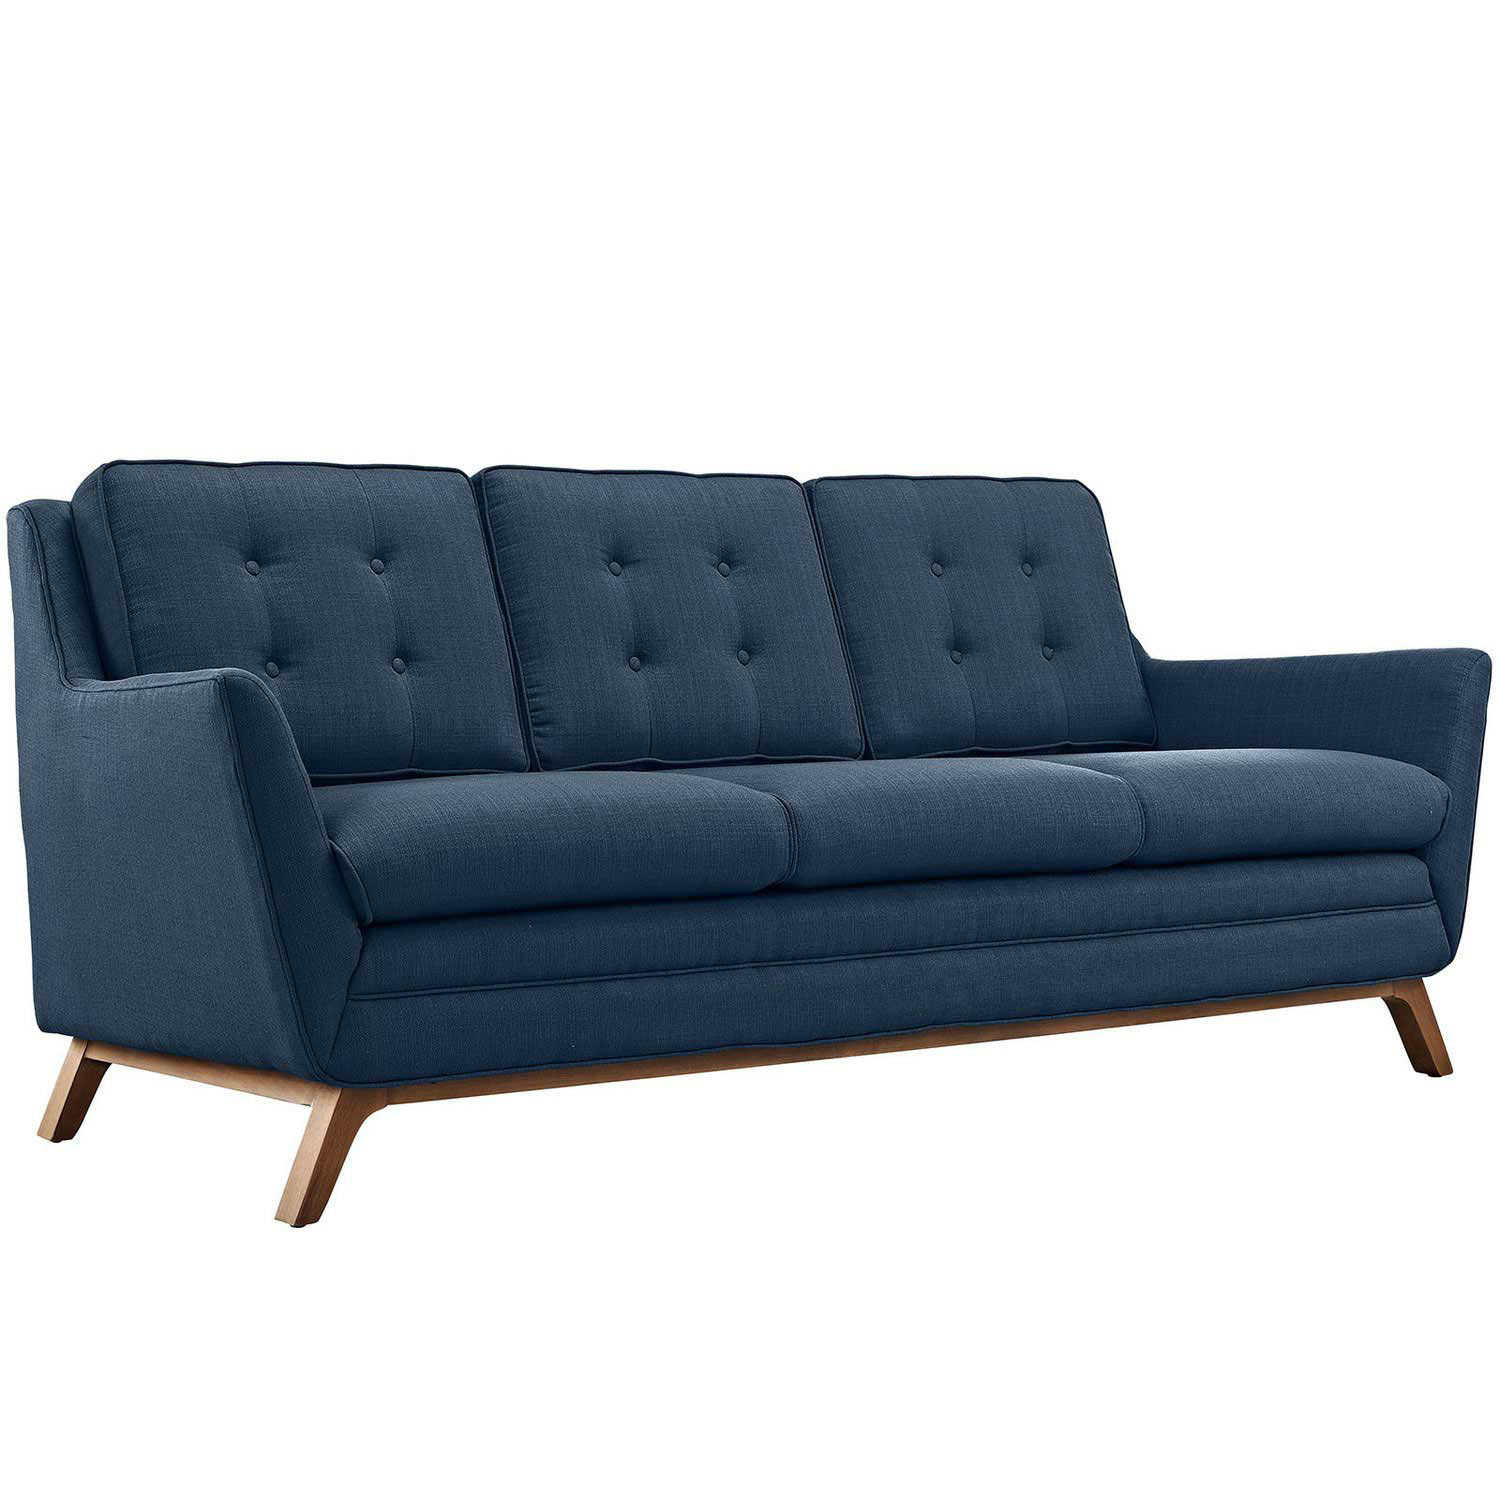 Modway Beguile Fabric Sofa - Azure